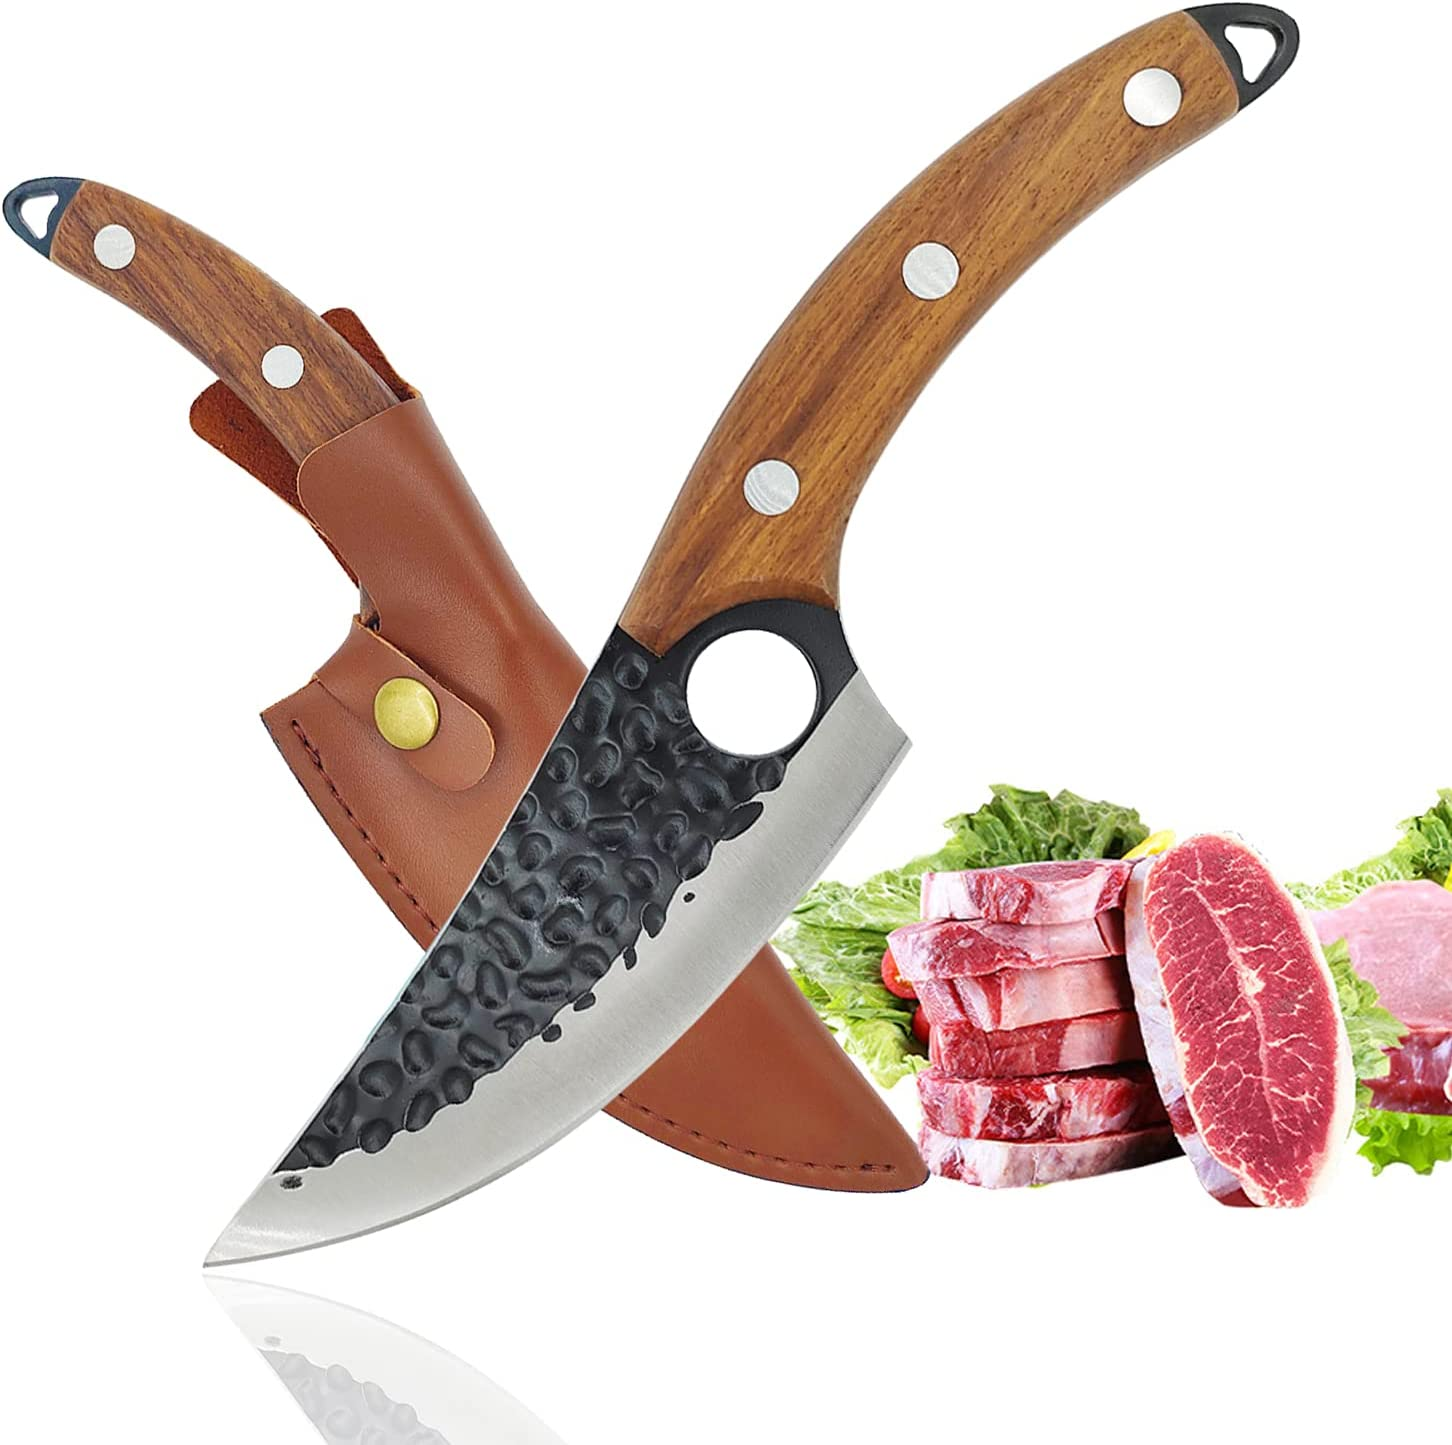 Butcher Knife Steak Boning knifes for and Max 86% OFF meat with Sheath Fille 5 ☆ popular